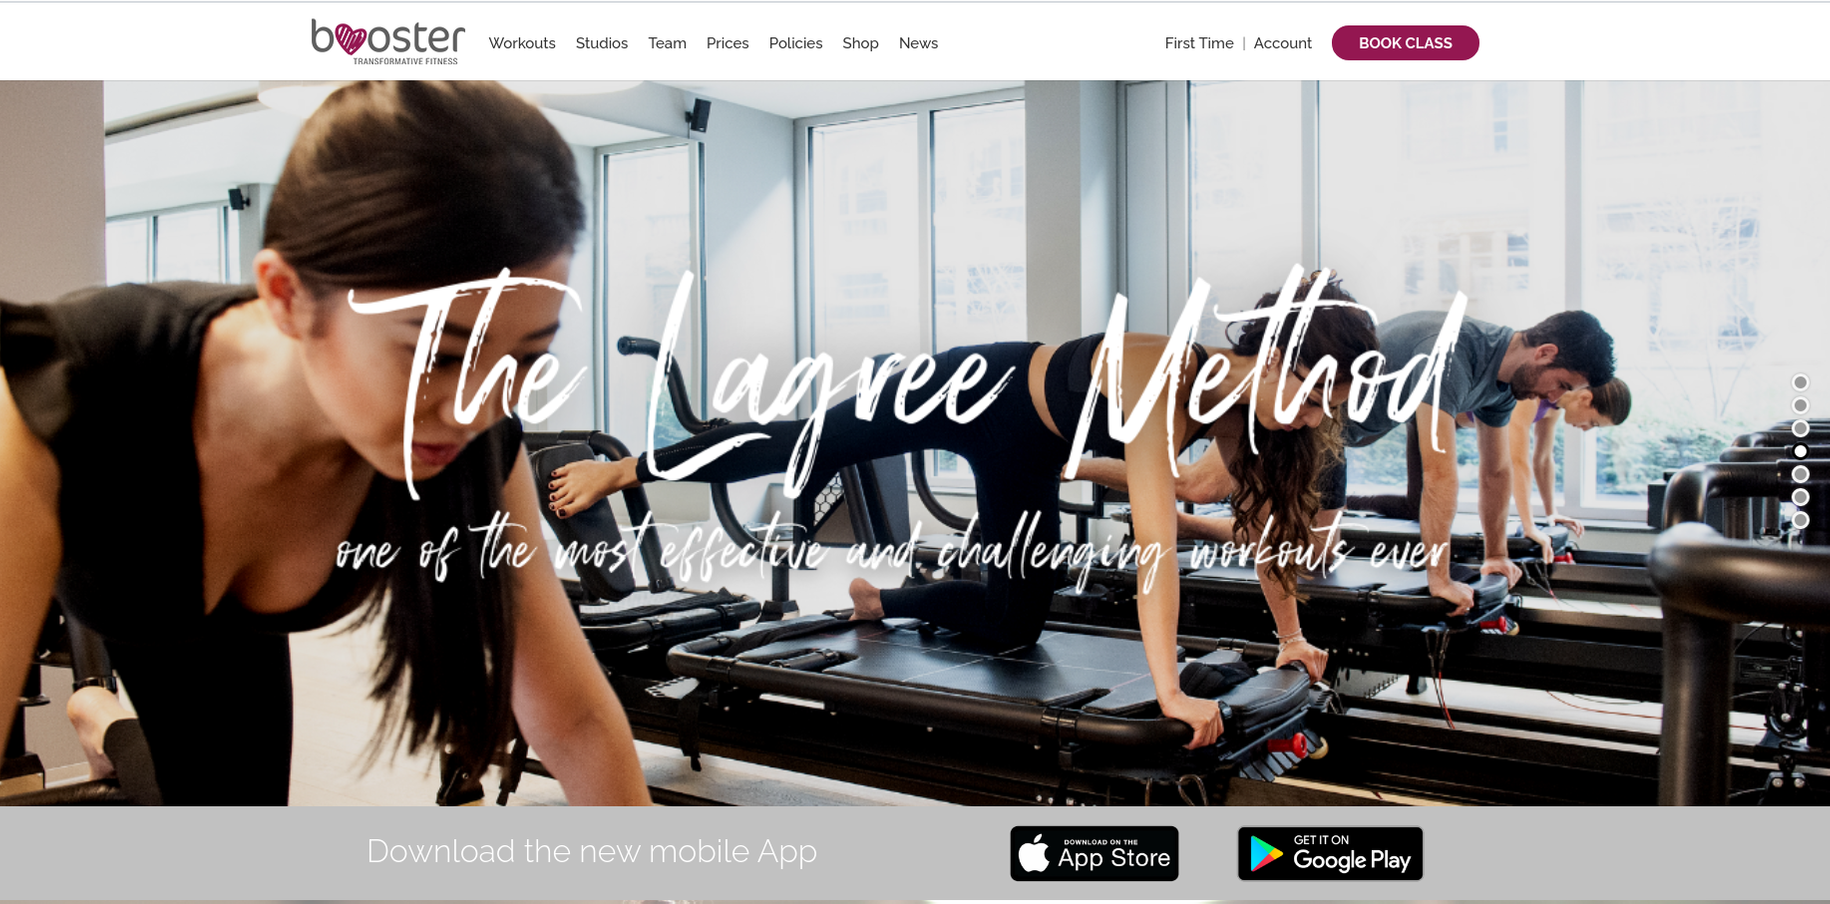 Booster Transform's home page offering its Lagree method as a effective & challenging workout